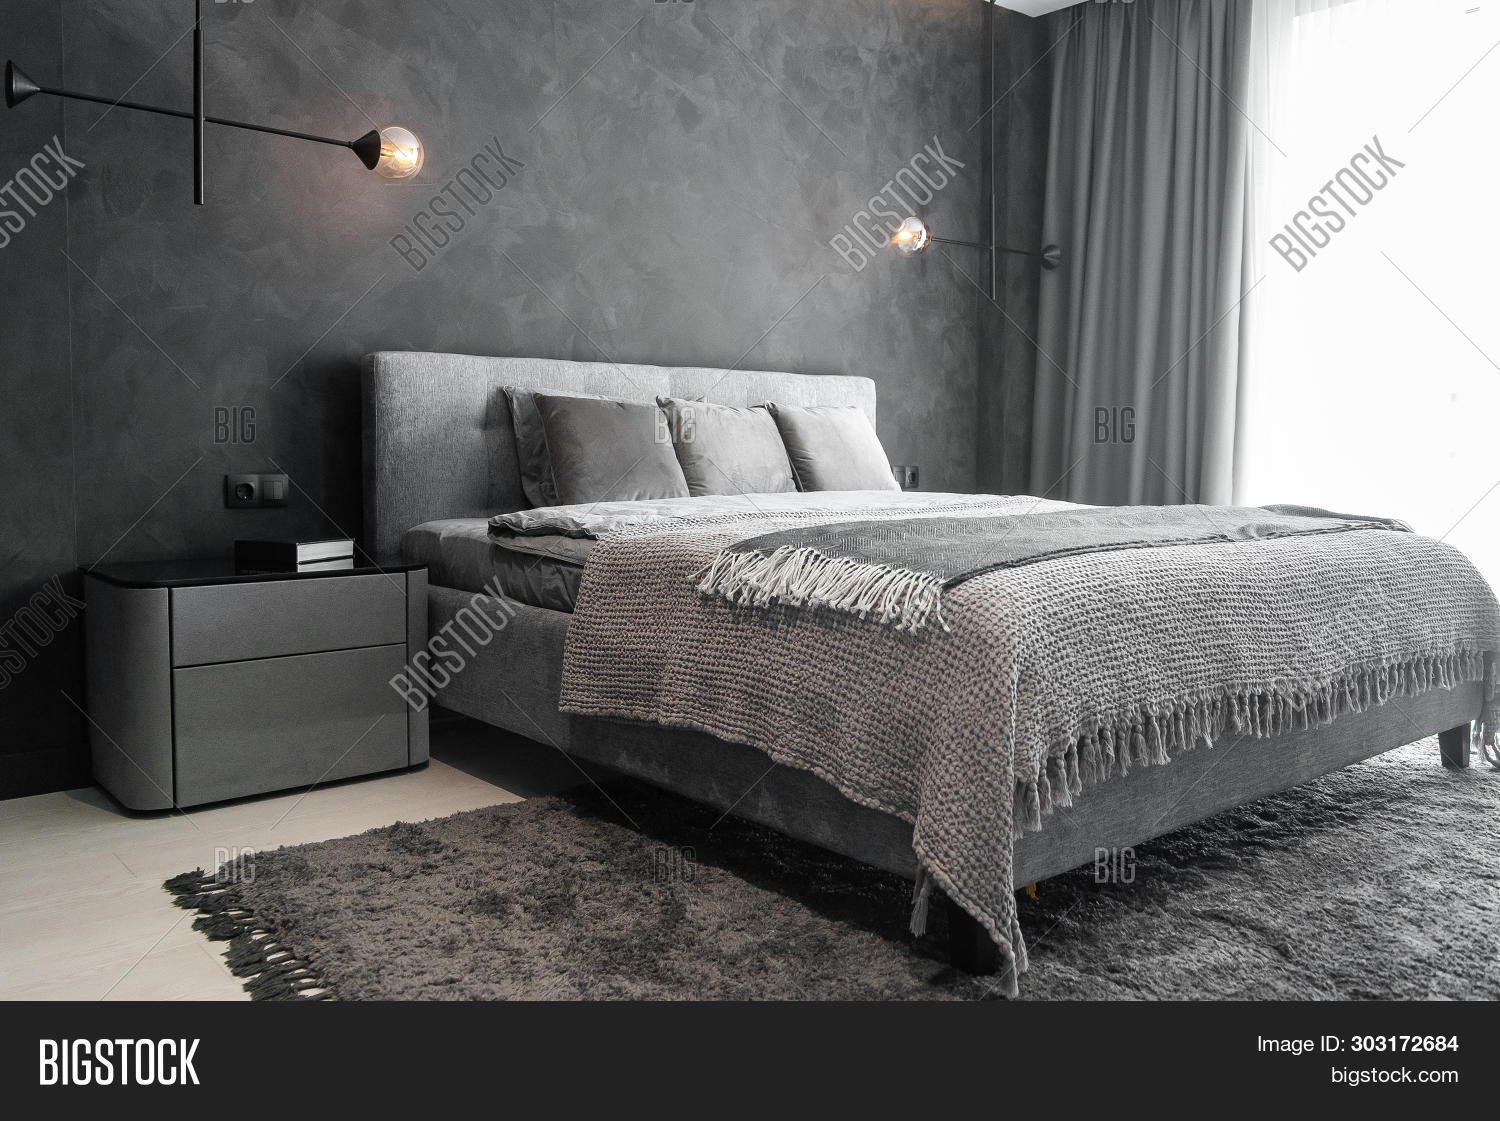 apartment,bachelor,bed,bedroom,bedsheets,black,blanket,bright,carpet,concrete,contemporary,contrast,cozy,decor,design,designer,enjoy,flat,floor,furniture,great,grey,home,indoor,inspiration,interior,king,lamp,loft,lonely,master,metal,modern,monochromatic,pillow,room,scandinavian,simple,single,space,spacious,style,stylish,texture,trends,wall,white